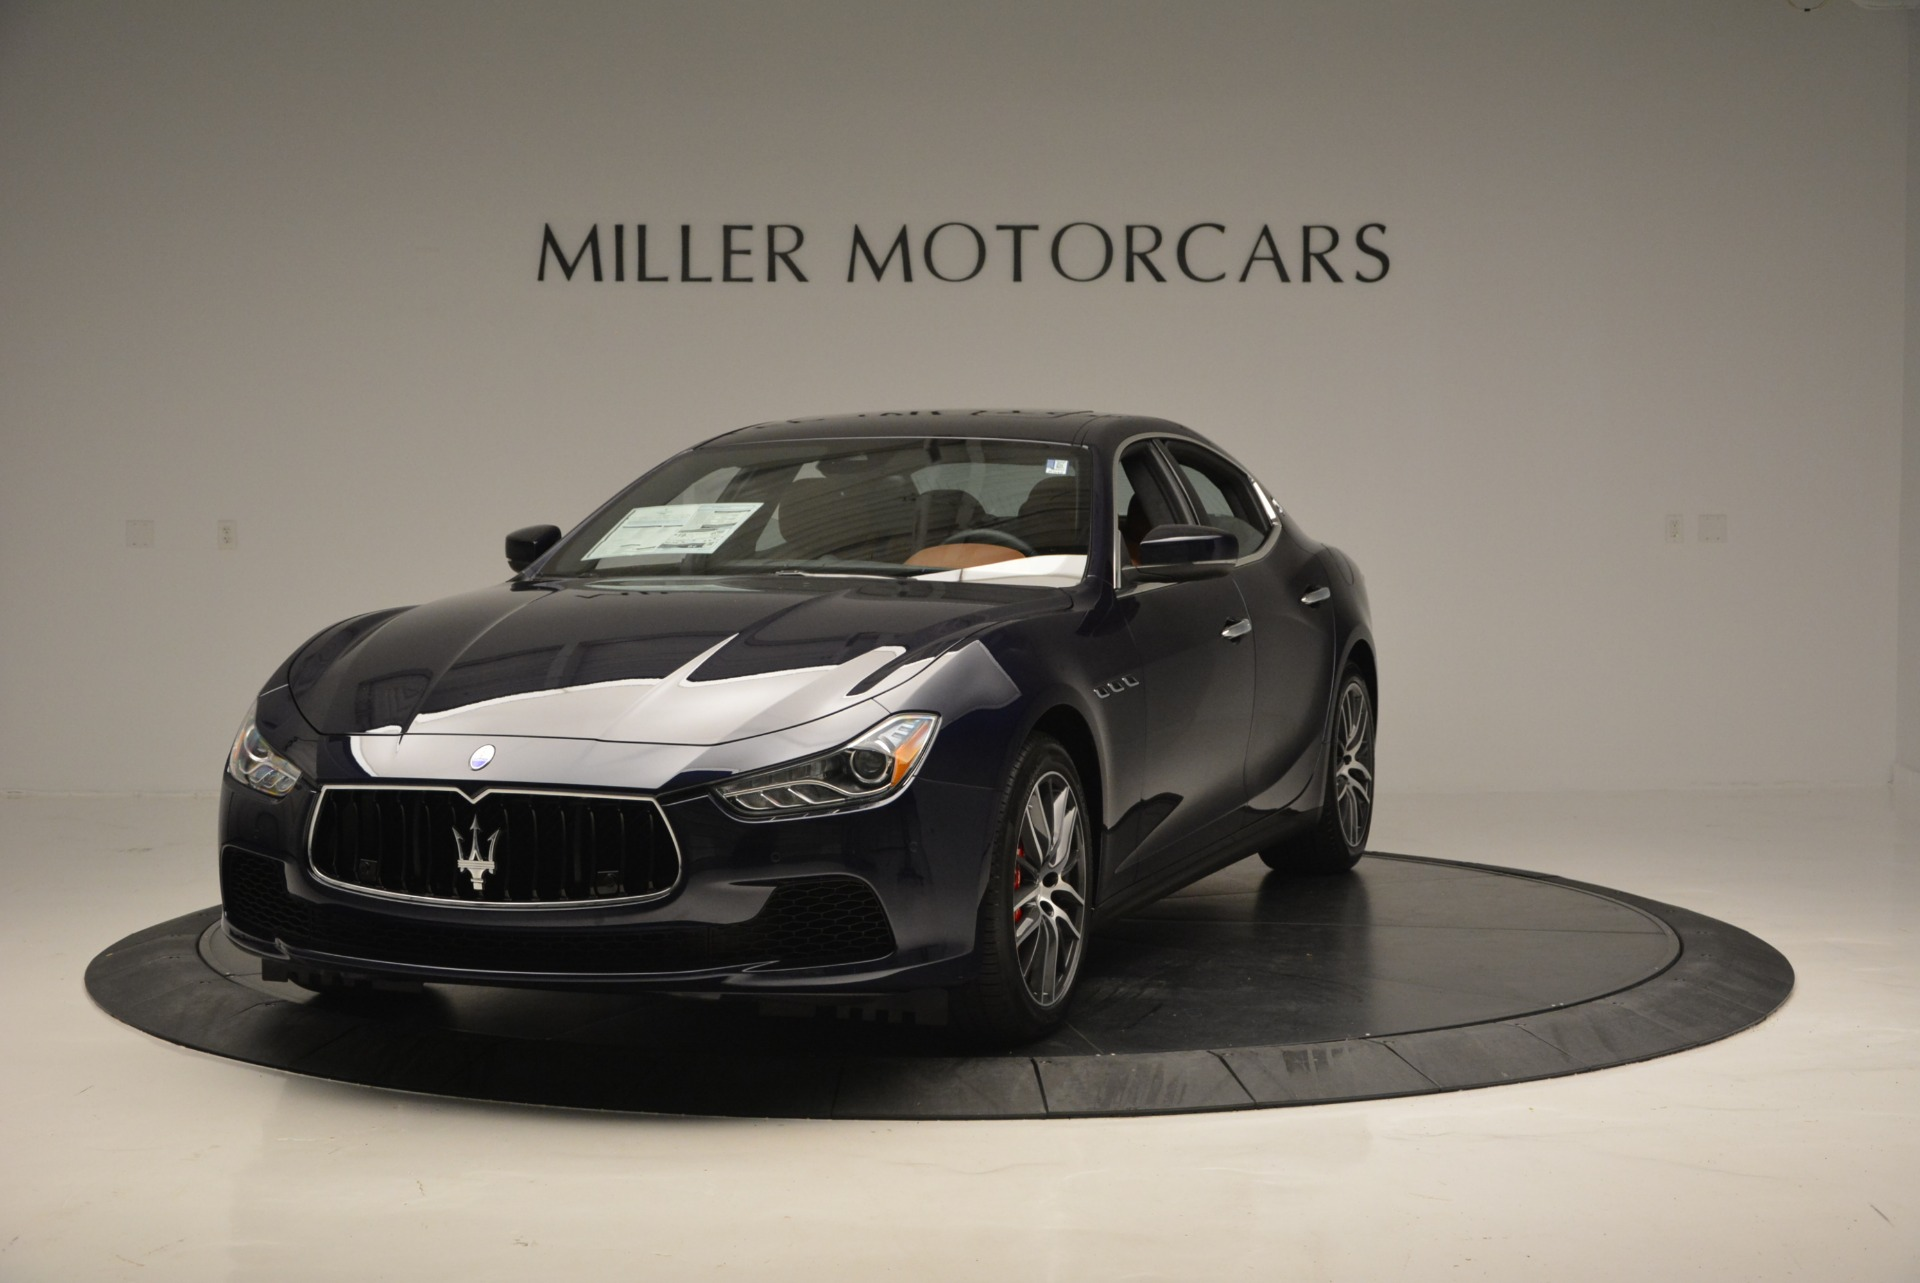 New 2017 Maserati Ghibli S Q4 For Sale In Greenwich, CT 713_main